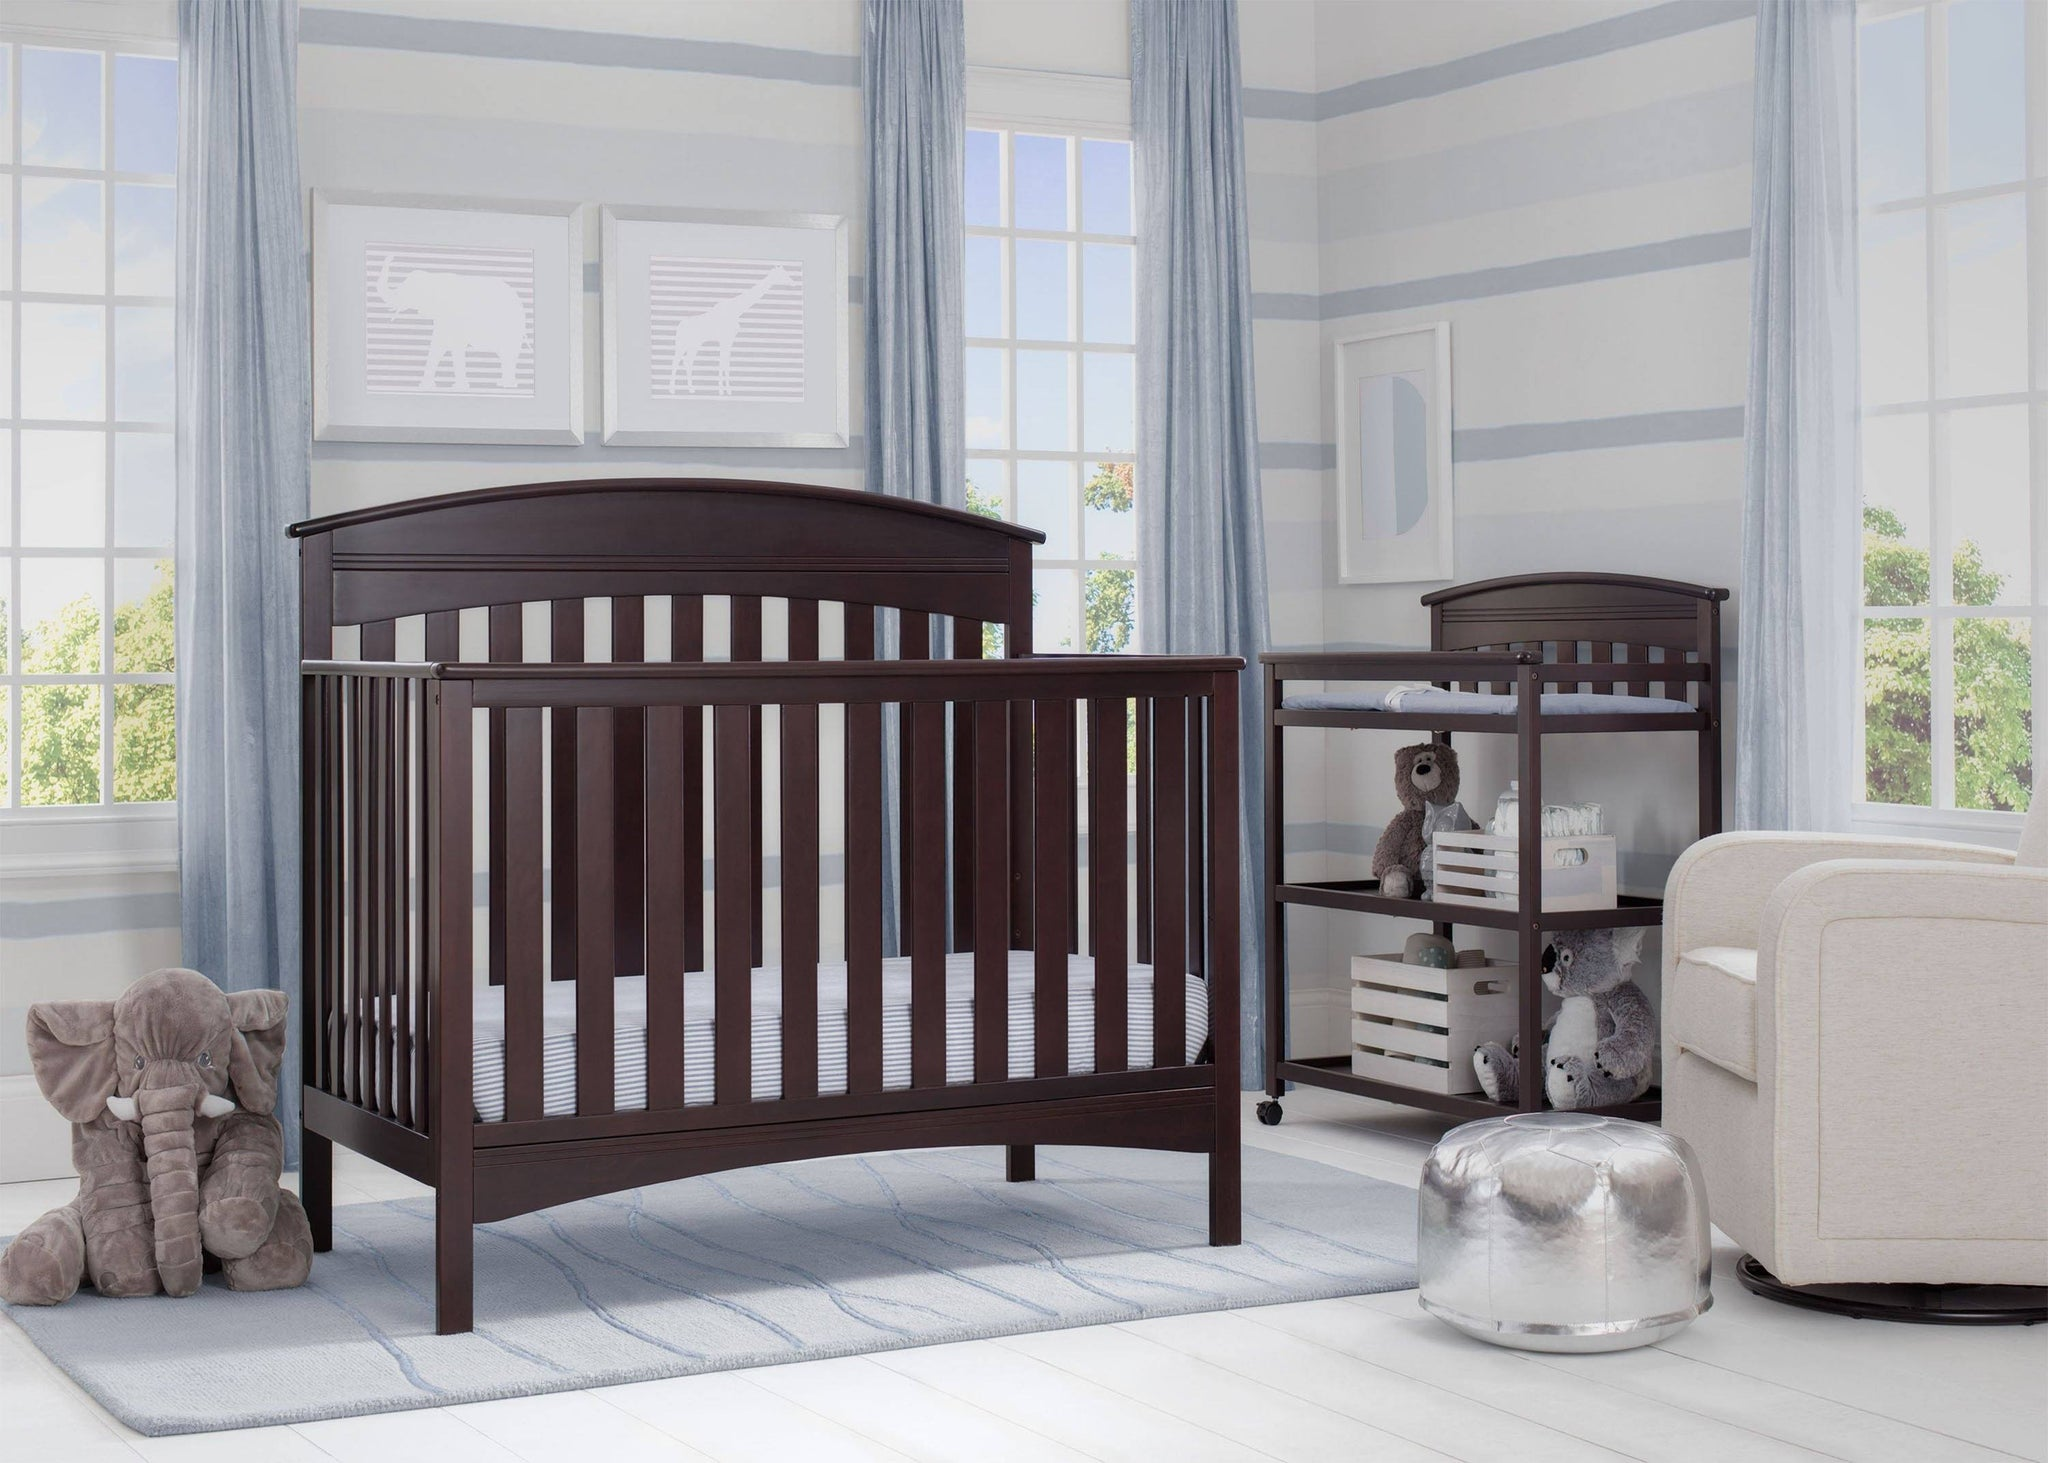 Delta Children Dark Espresso (958) Bennington Elite Arched 4-in-1 Convertible Crib, Room, c1c